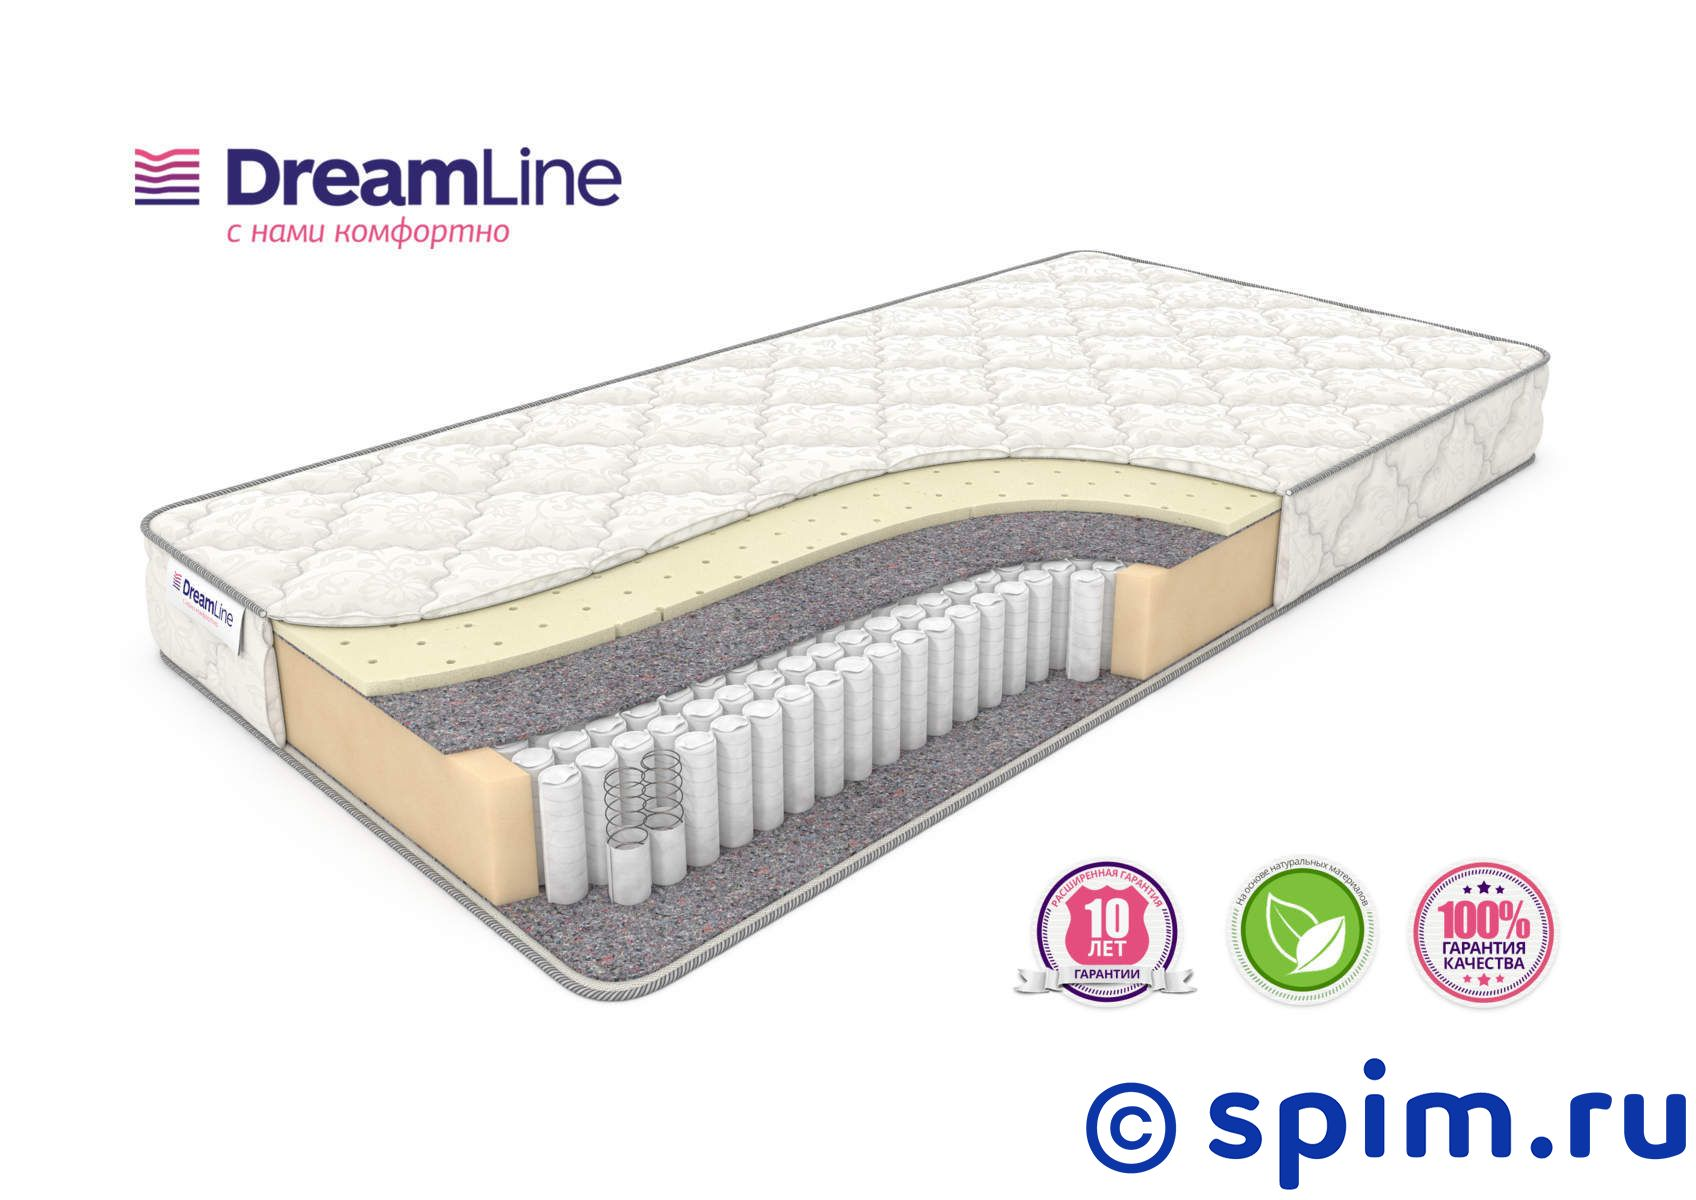 Матрас DreamLine Single Sleep 3 S1000 120х195 см